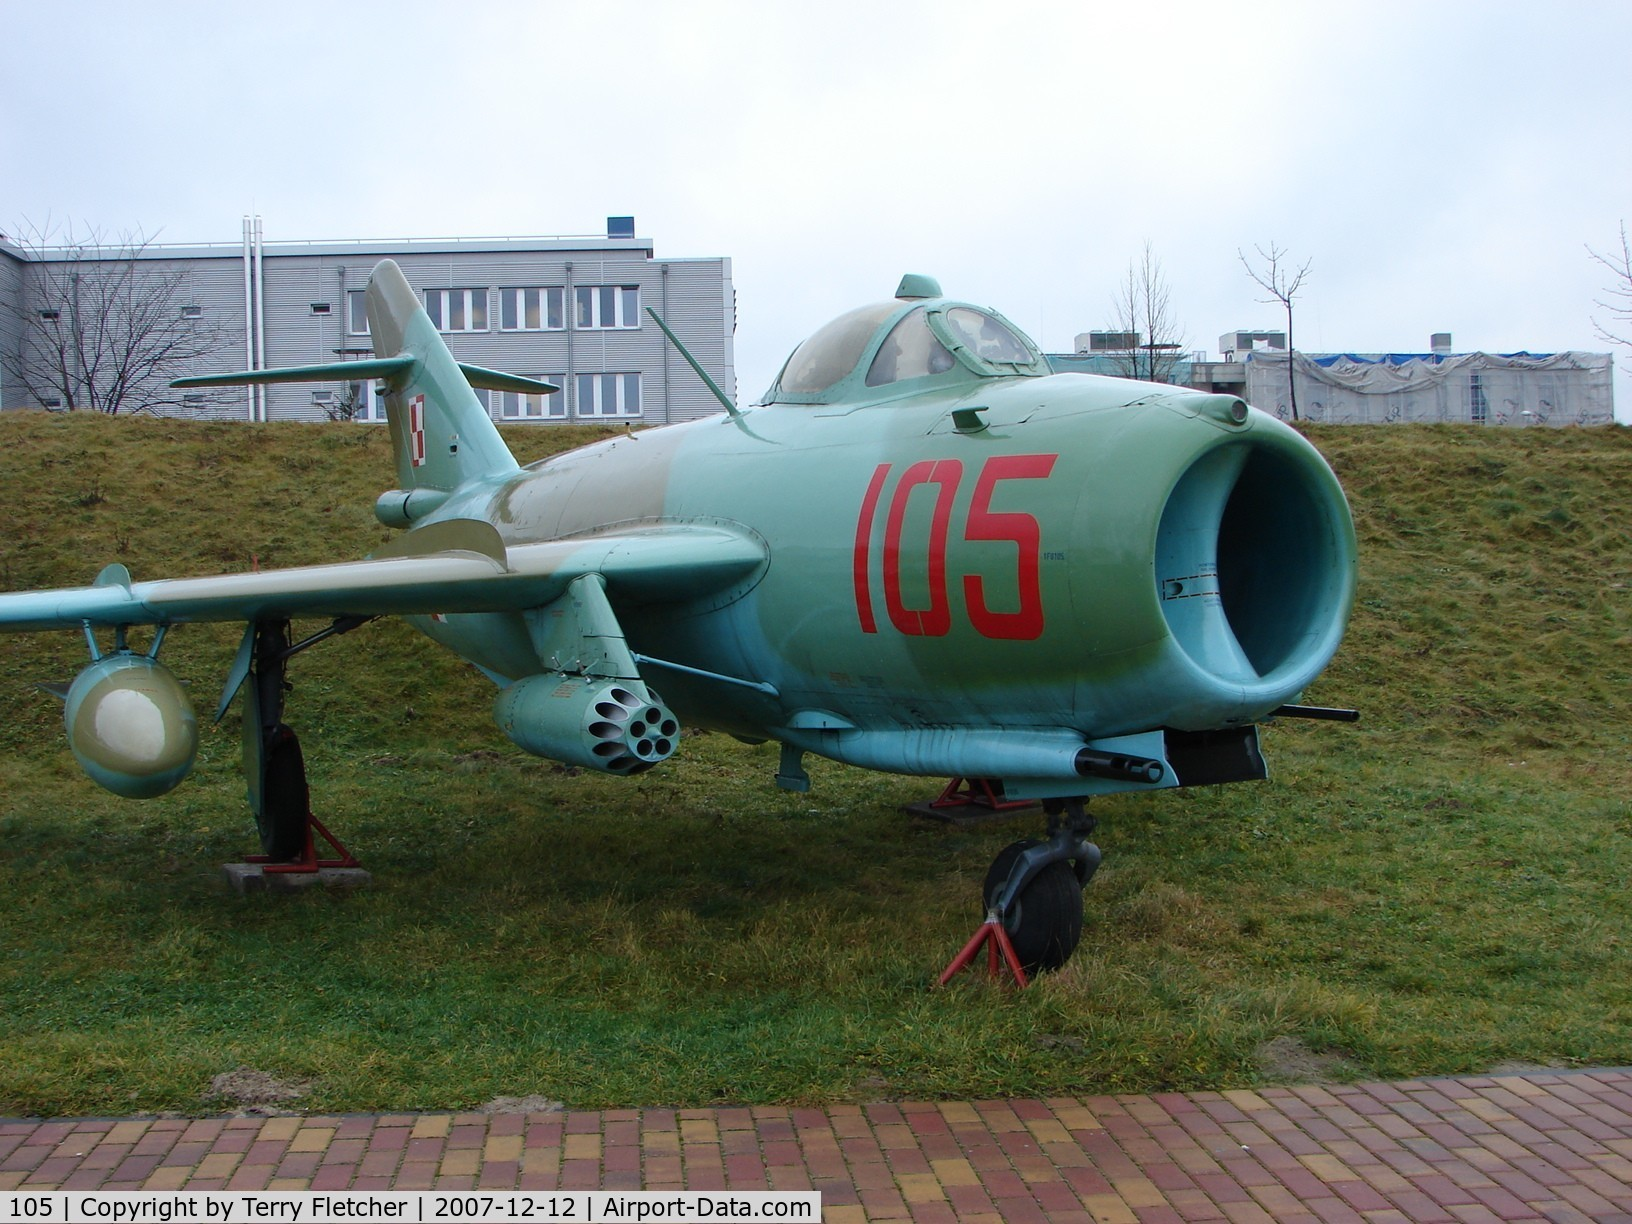 105, PZL-Mielec Lim-6bis C/N 1F-0105, Another angle showing the artillery of the Polish Lim 6Bis